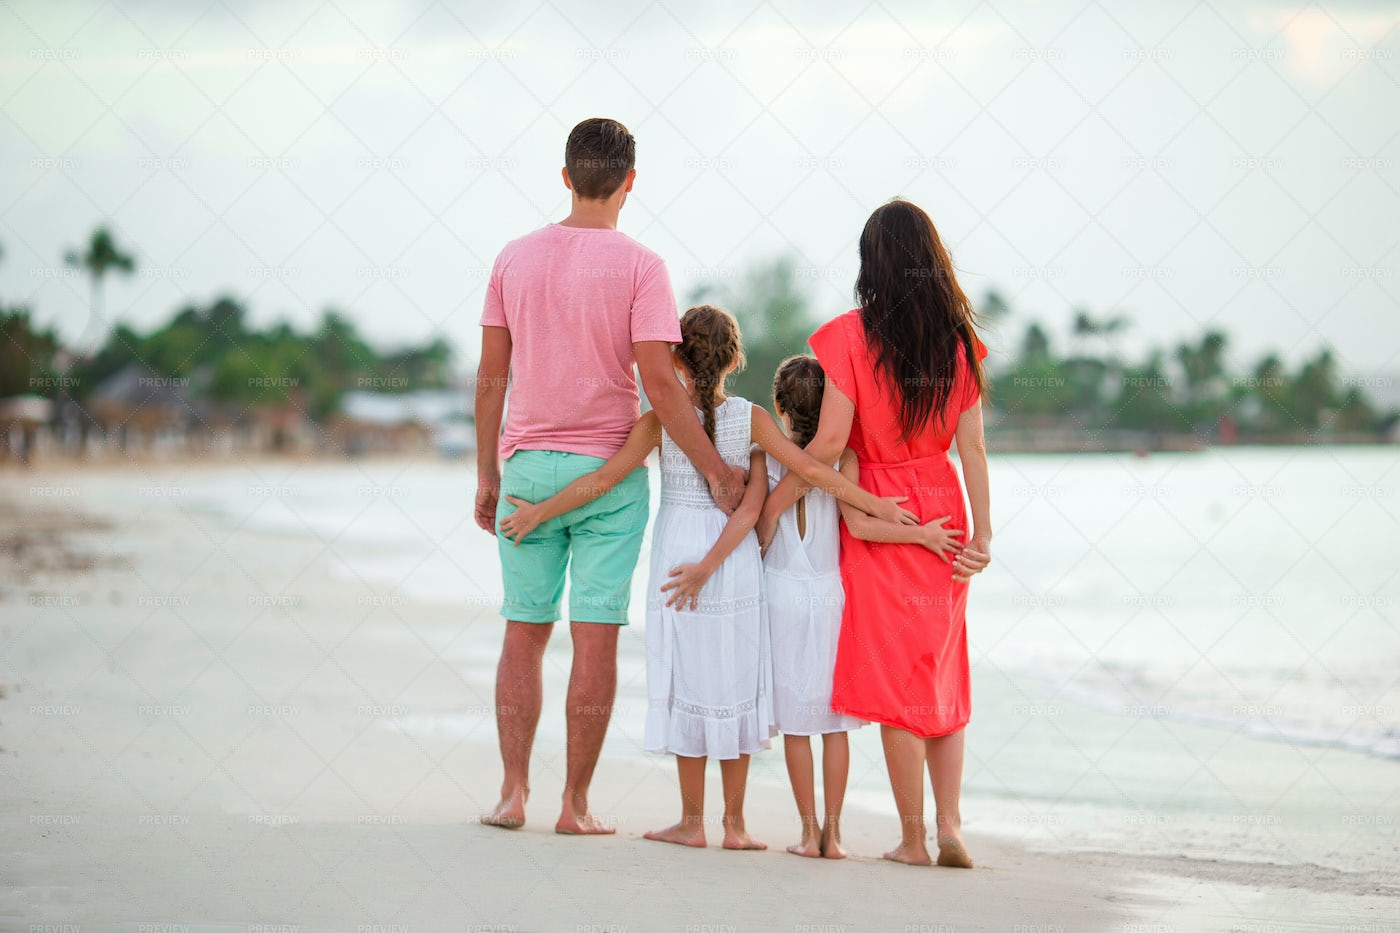 Arm-In-Arm At The Shore: Stock Photos